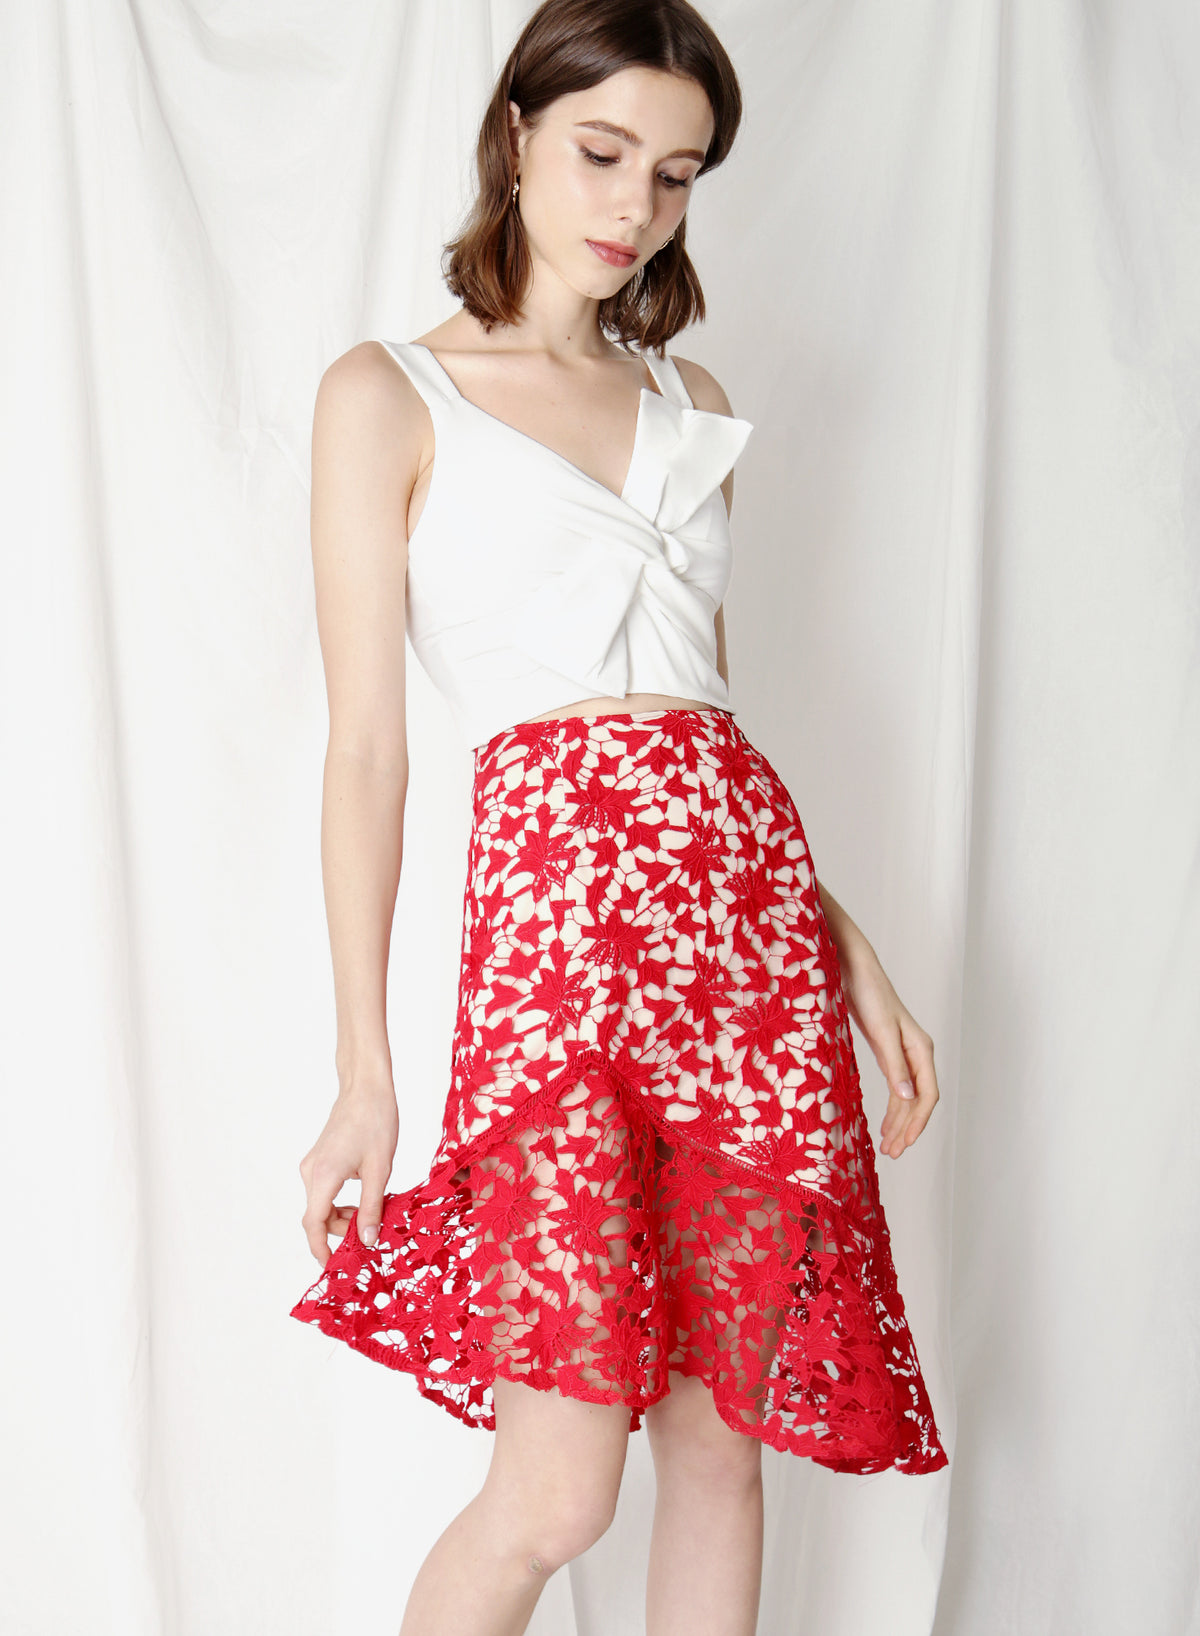 Oath Crochet Lace Skirt (Poppy) at $ 38.00 only sold at And Well Dressed Online Fashion Store Singapore